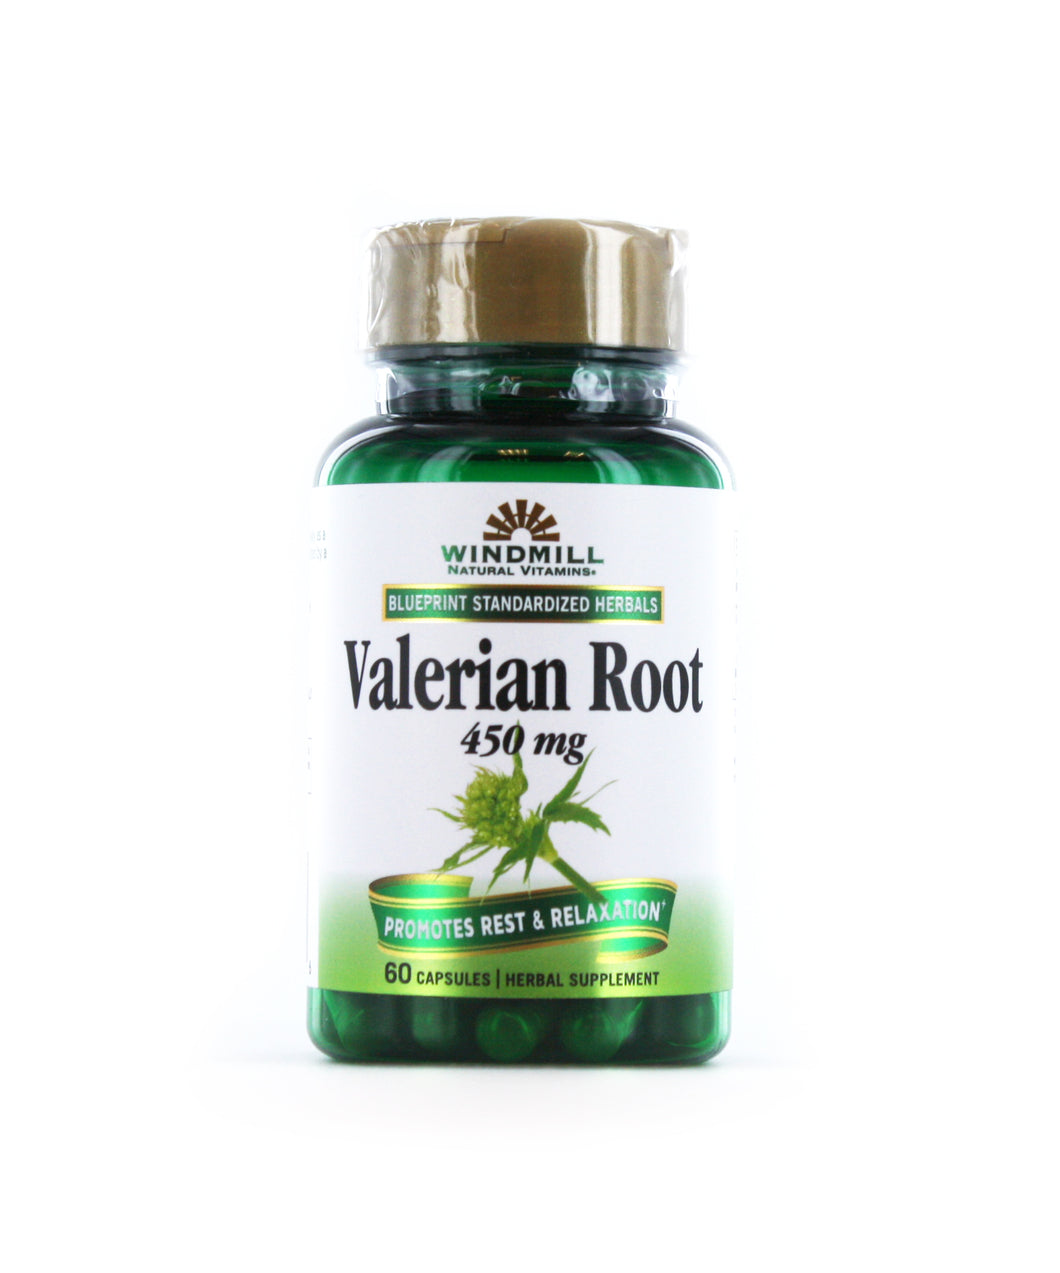 Valerian Root 450 mg.